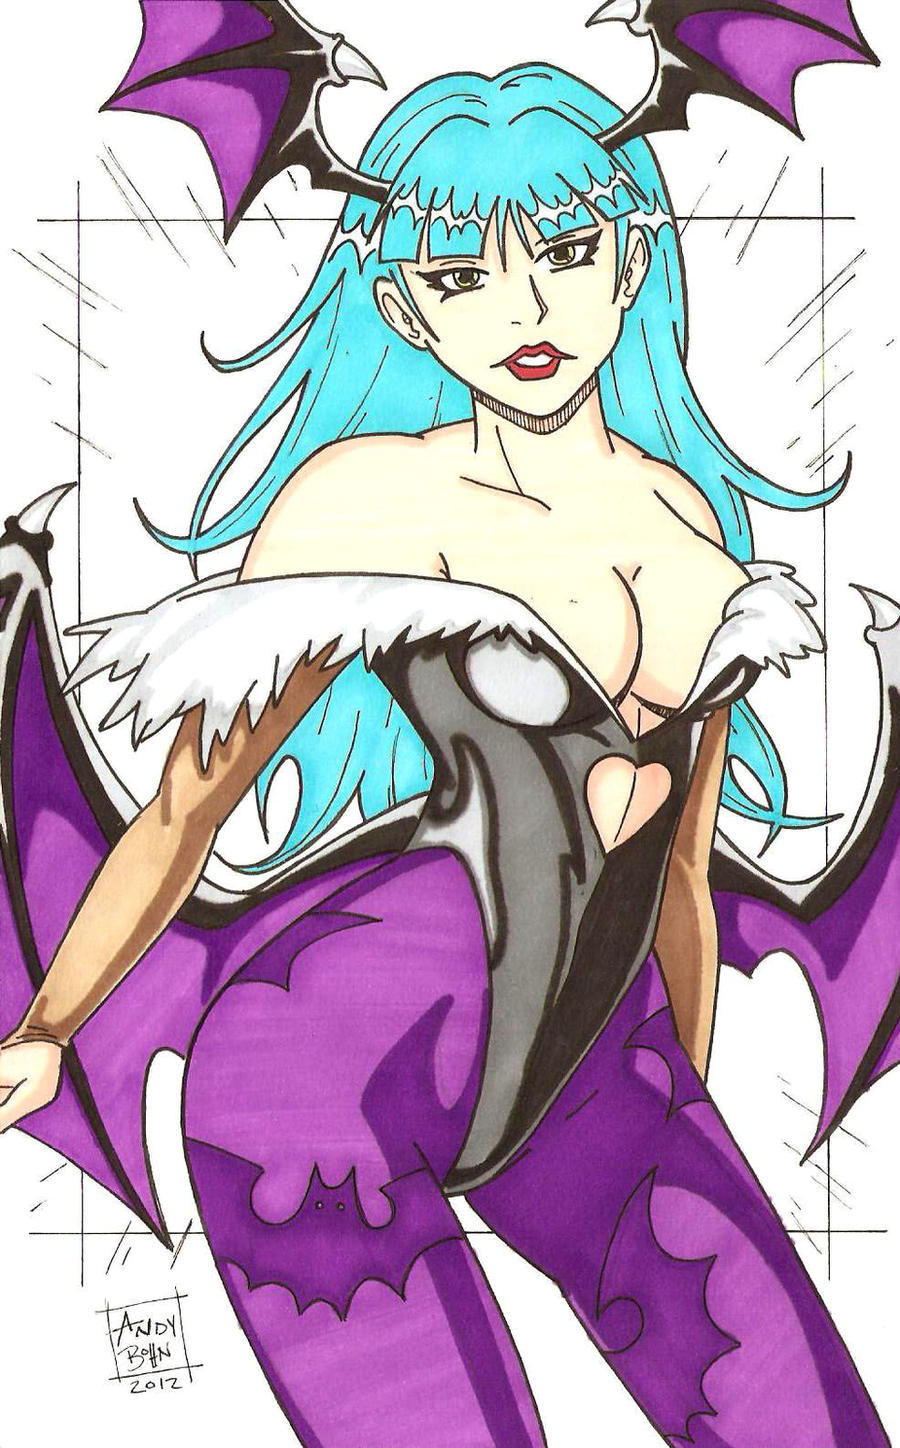 Morrigan Aensland by Elvatron